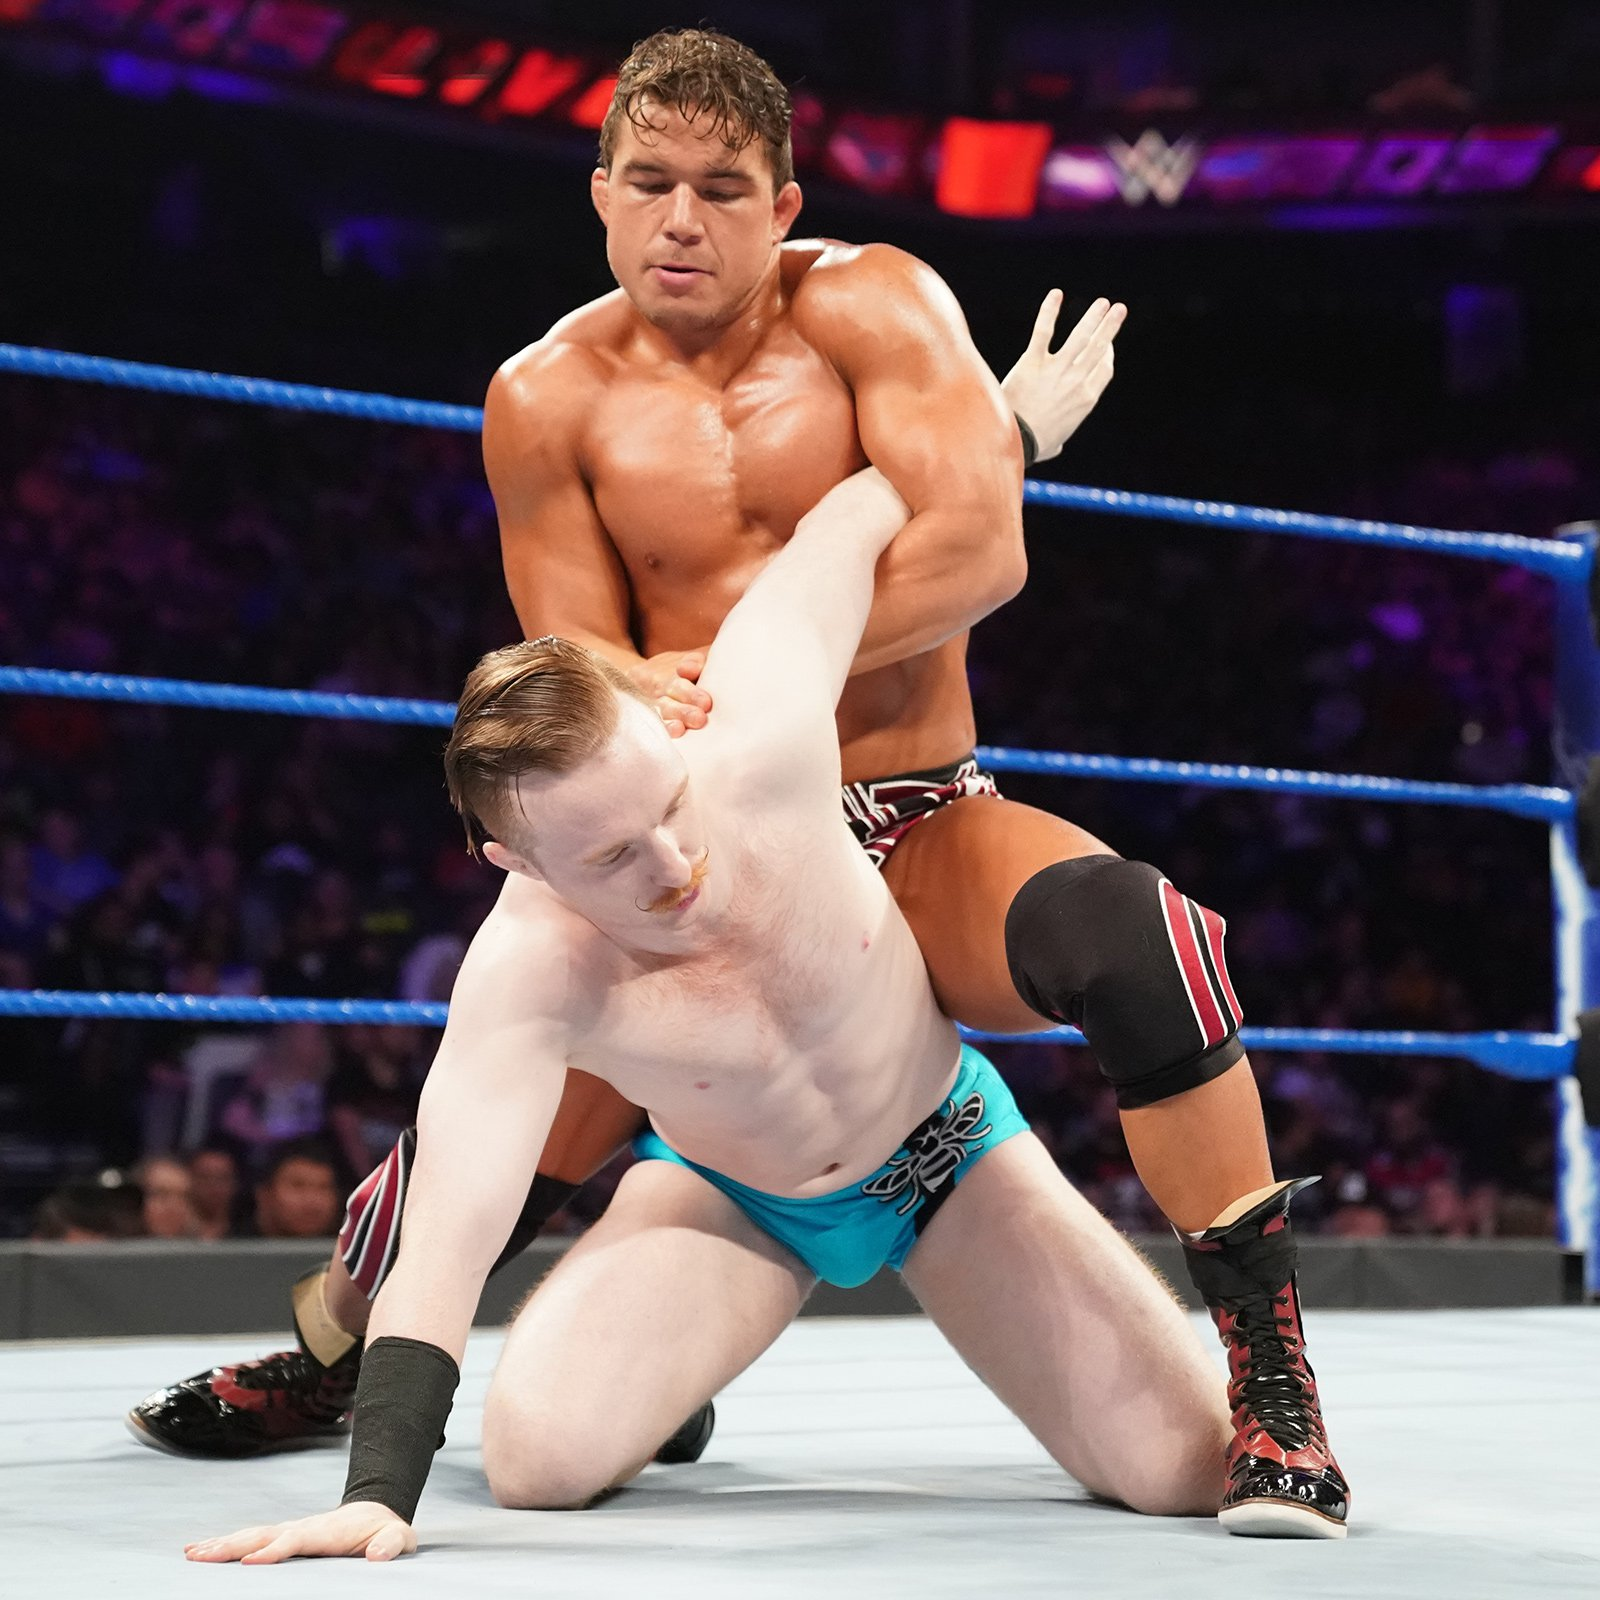 Gentleman Jack Gallagher vs. Chad Gable